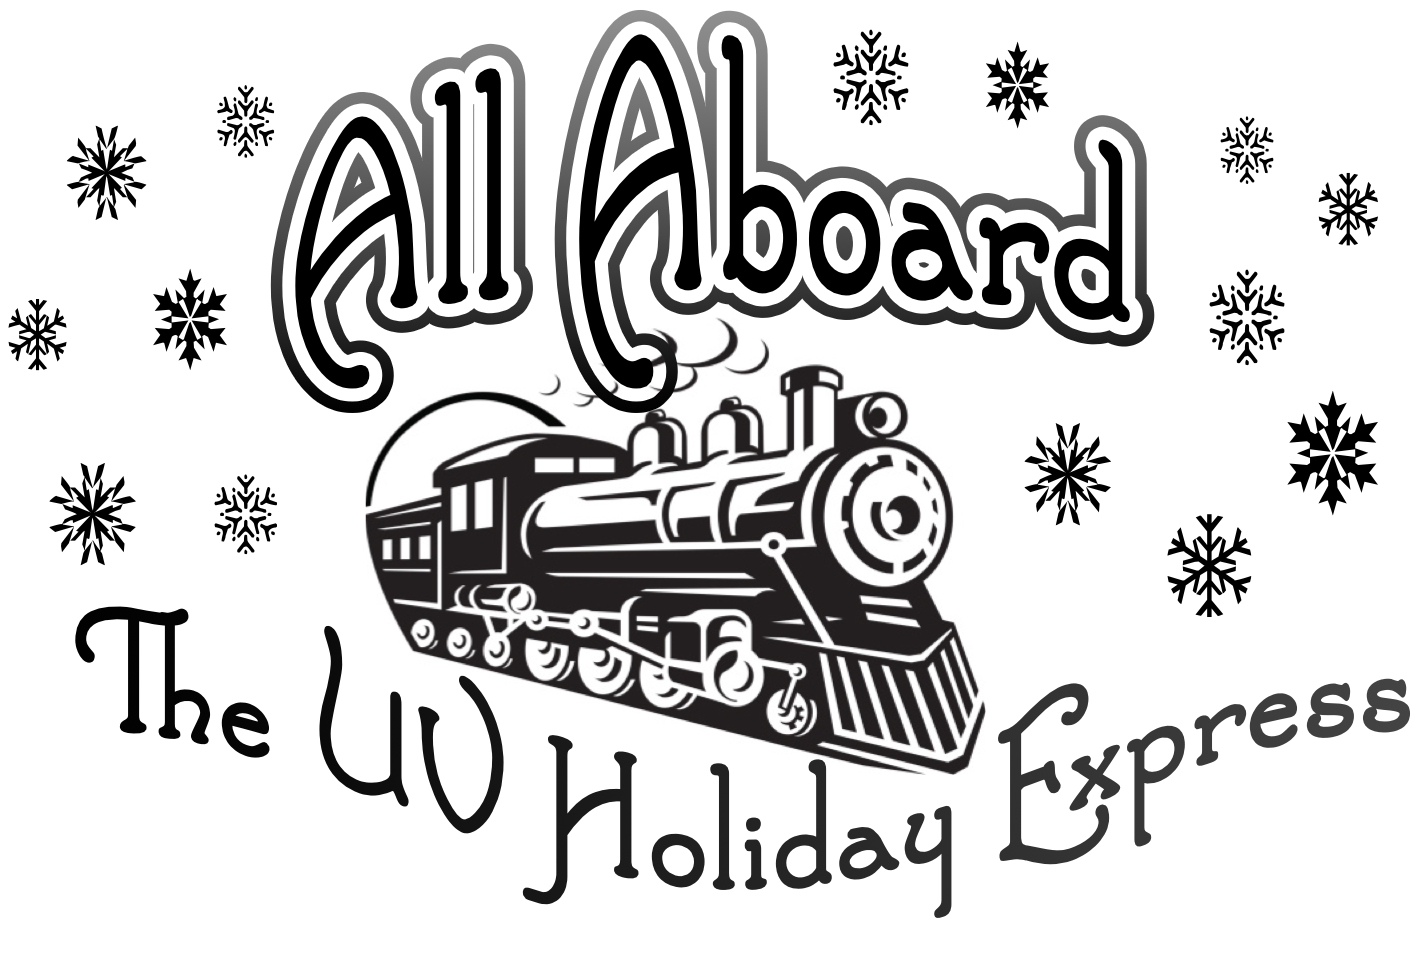 UV Holiday Express Arrives December 3 and 4